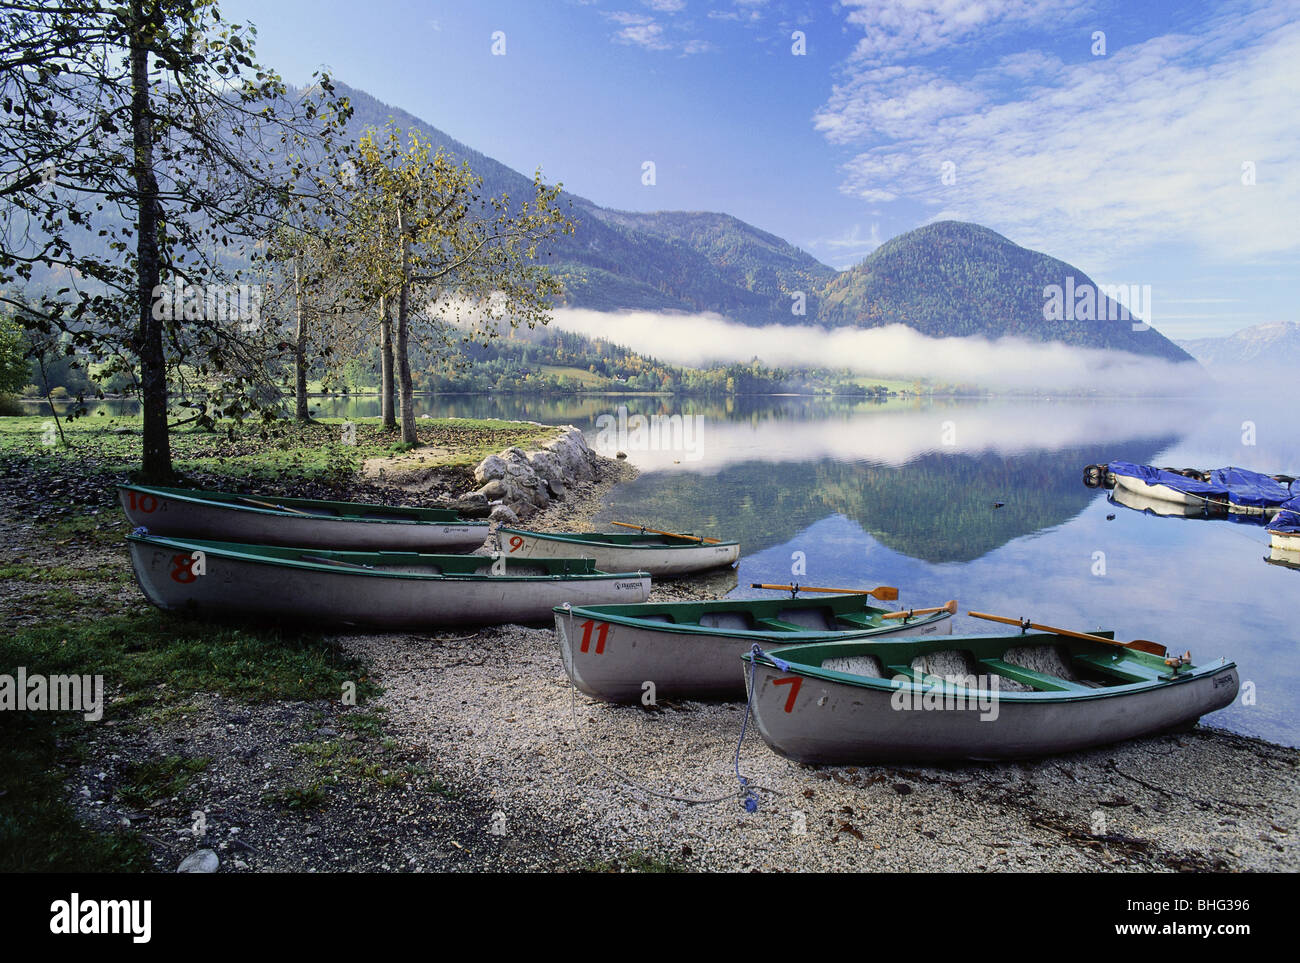 Géographie / voyage, Autriche, Styrie, paysages, vue du lac Grundlsee (Grundl), barques,-Additional-Rights Photo Stock